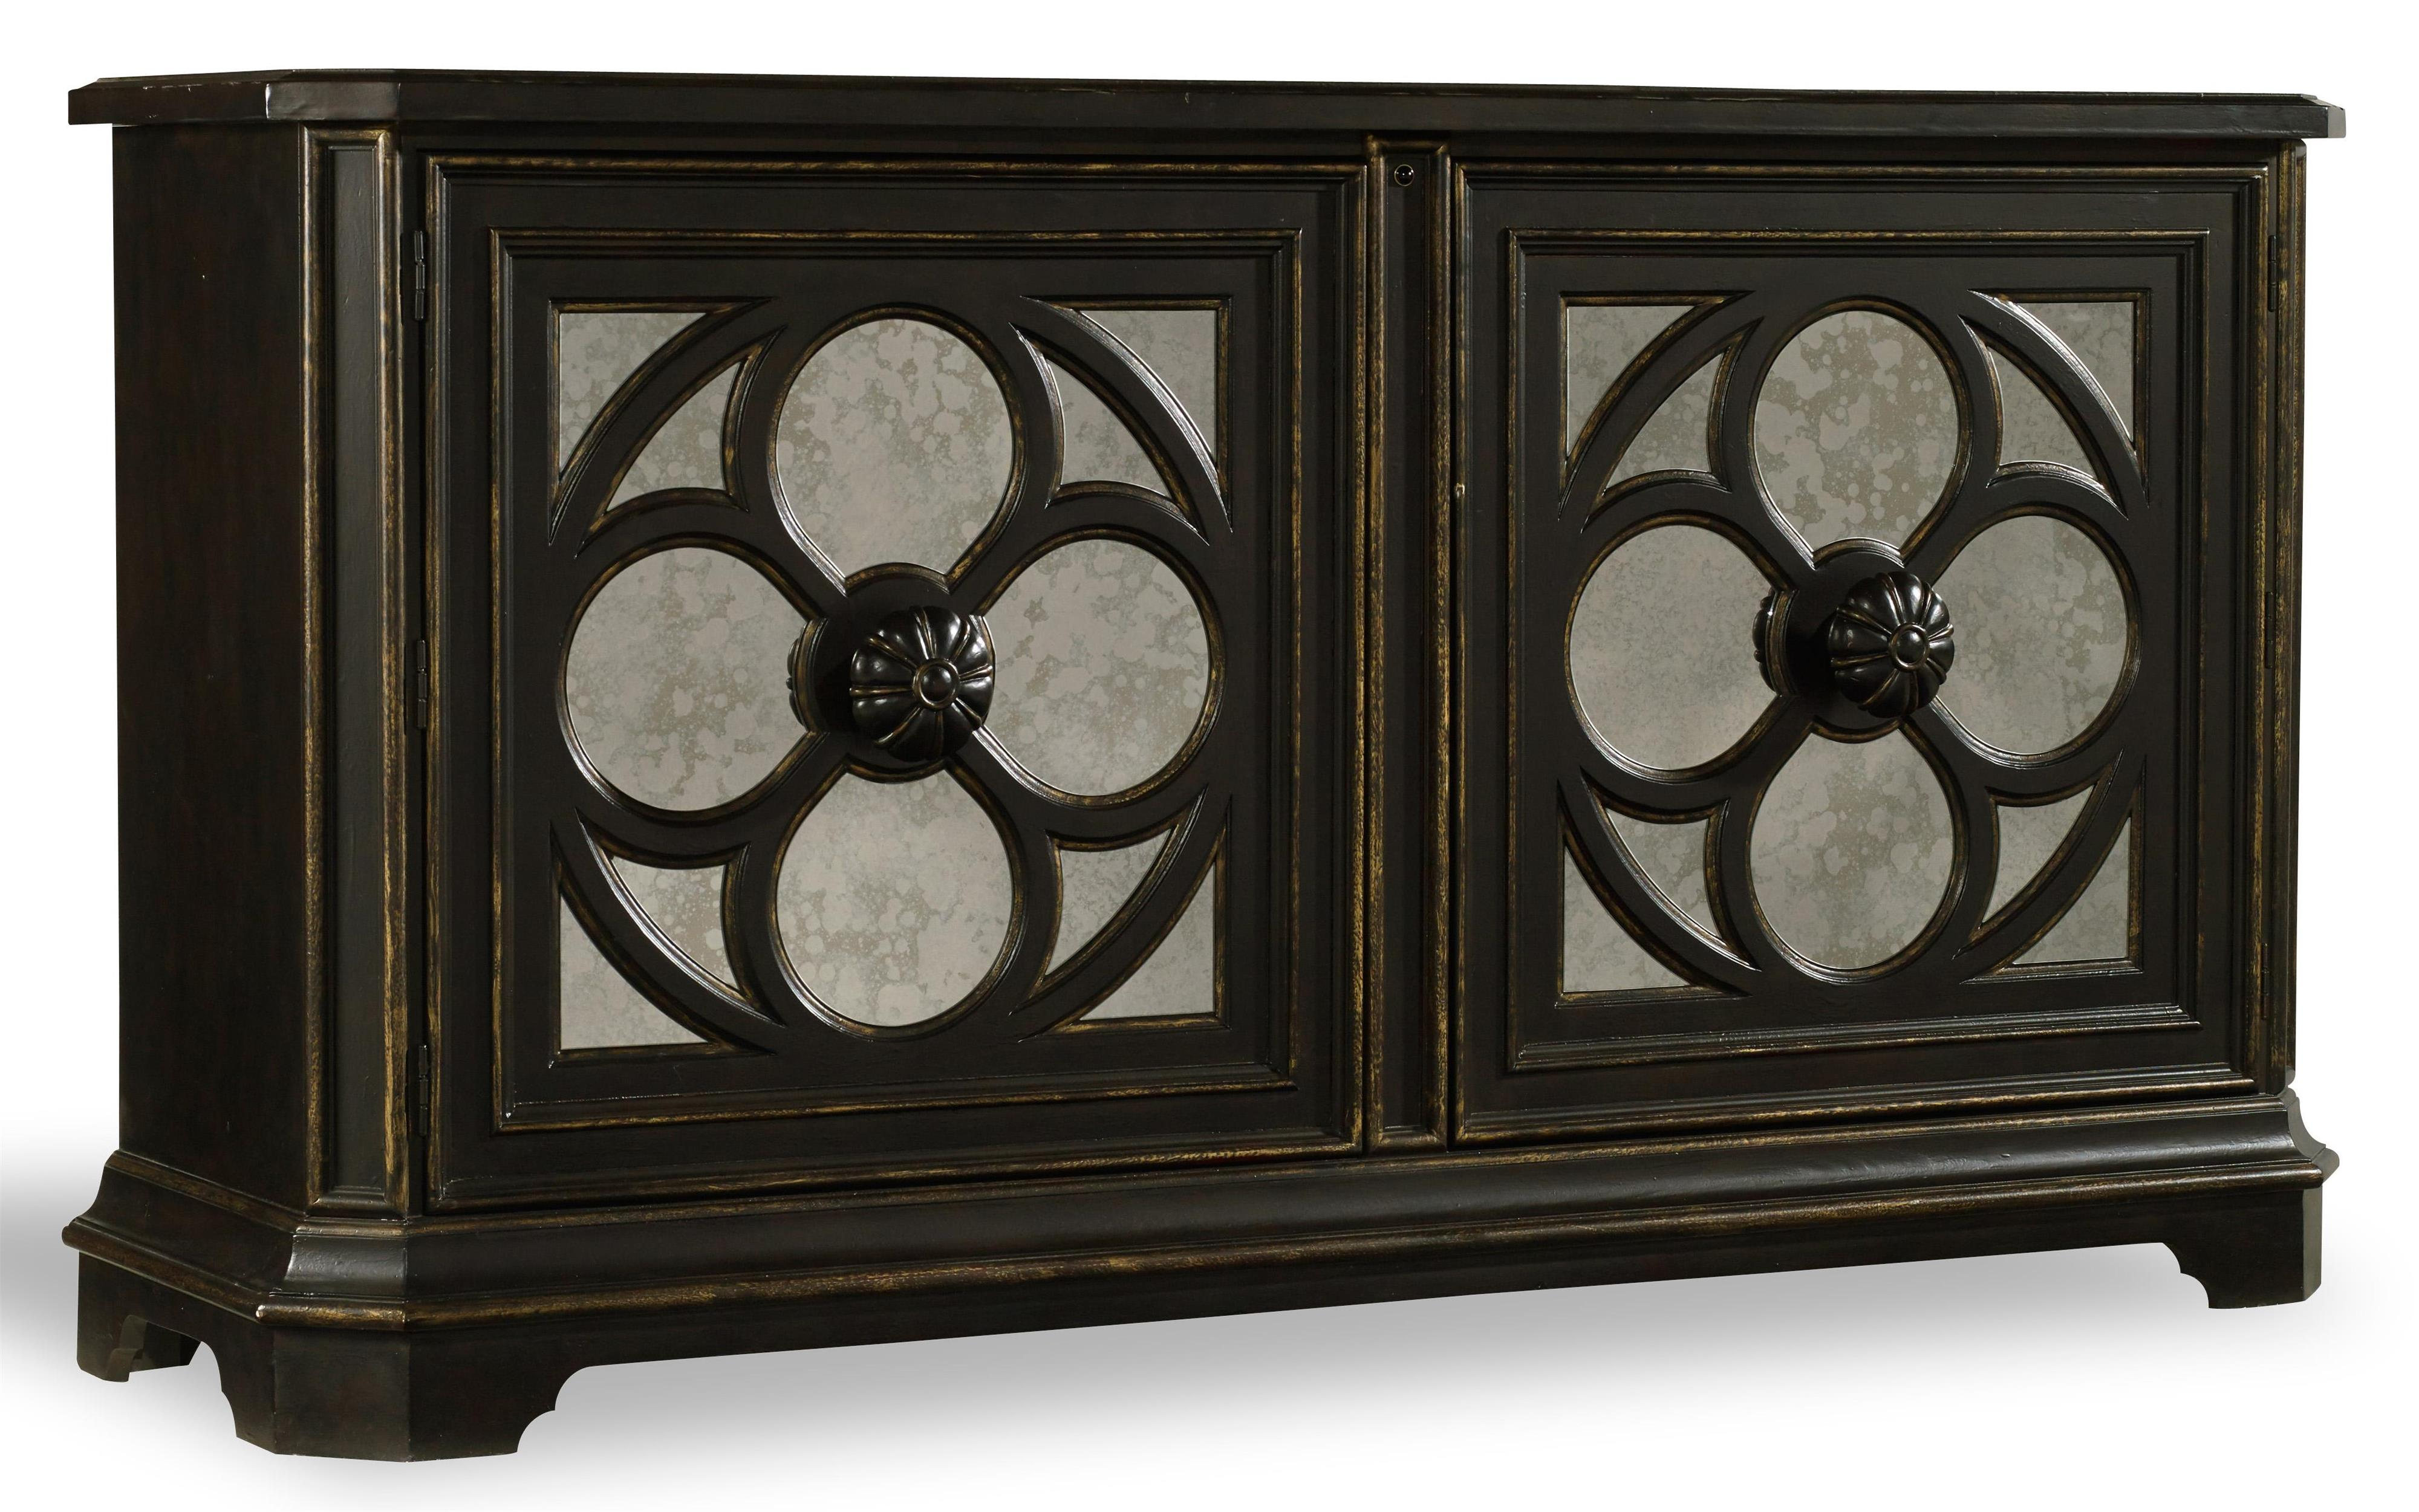 Superbe Hooker Furniture Living Room Accents Large Quatrefoil Chest With Mirrored  Door Fronts